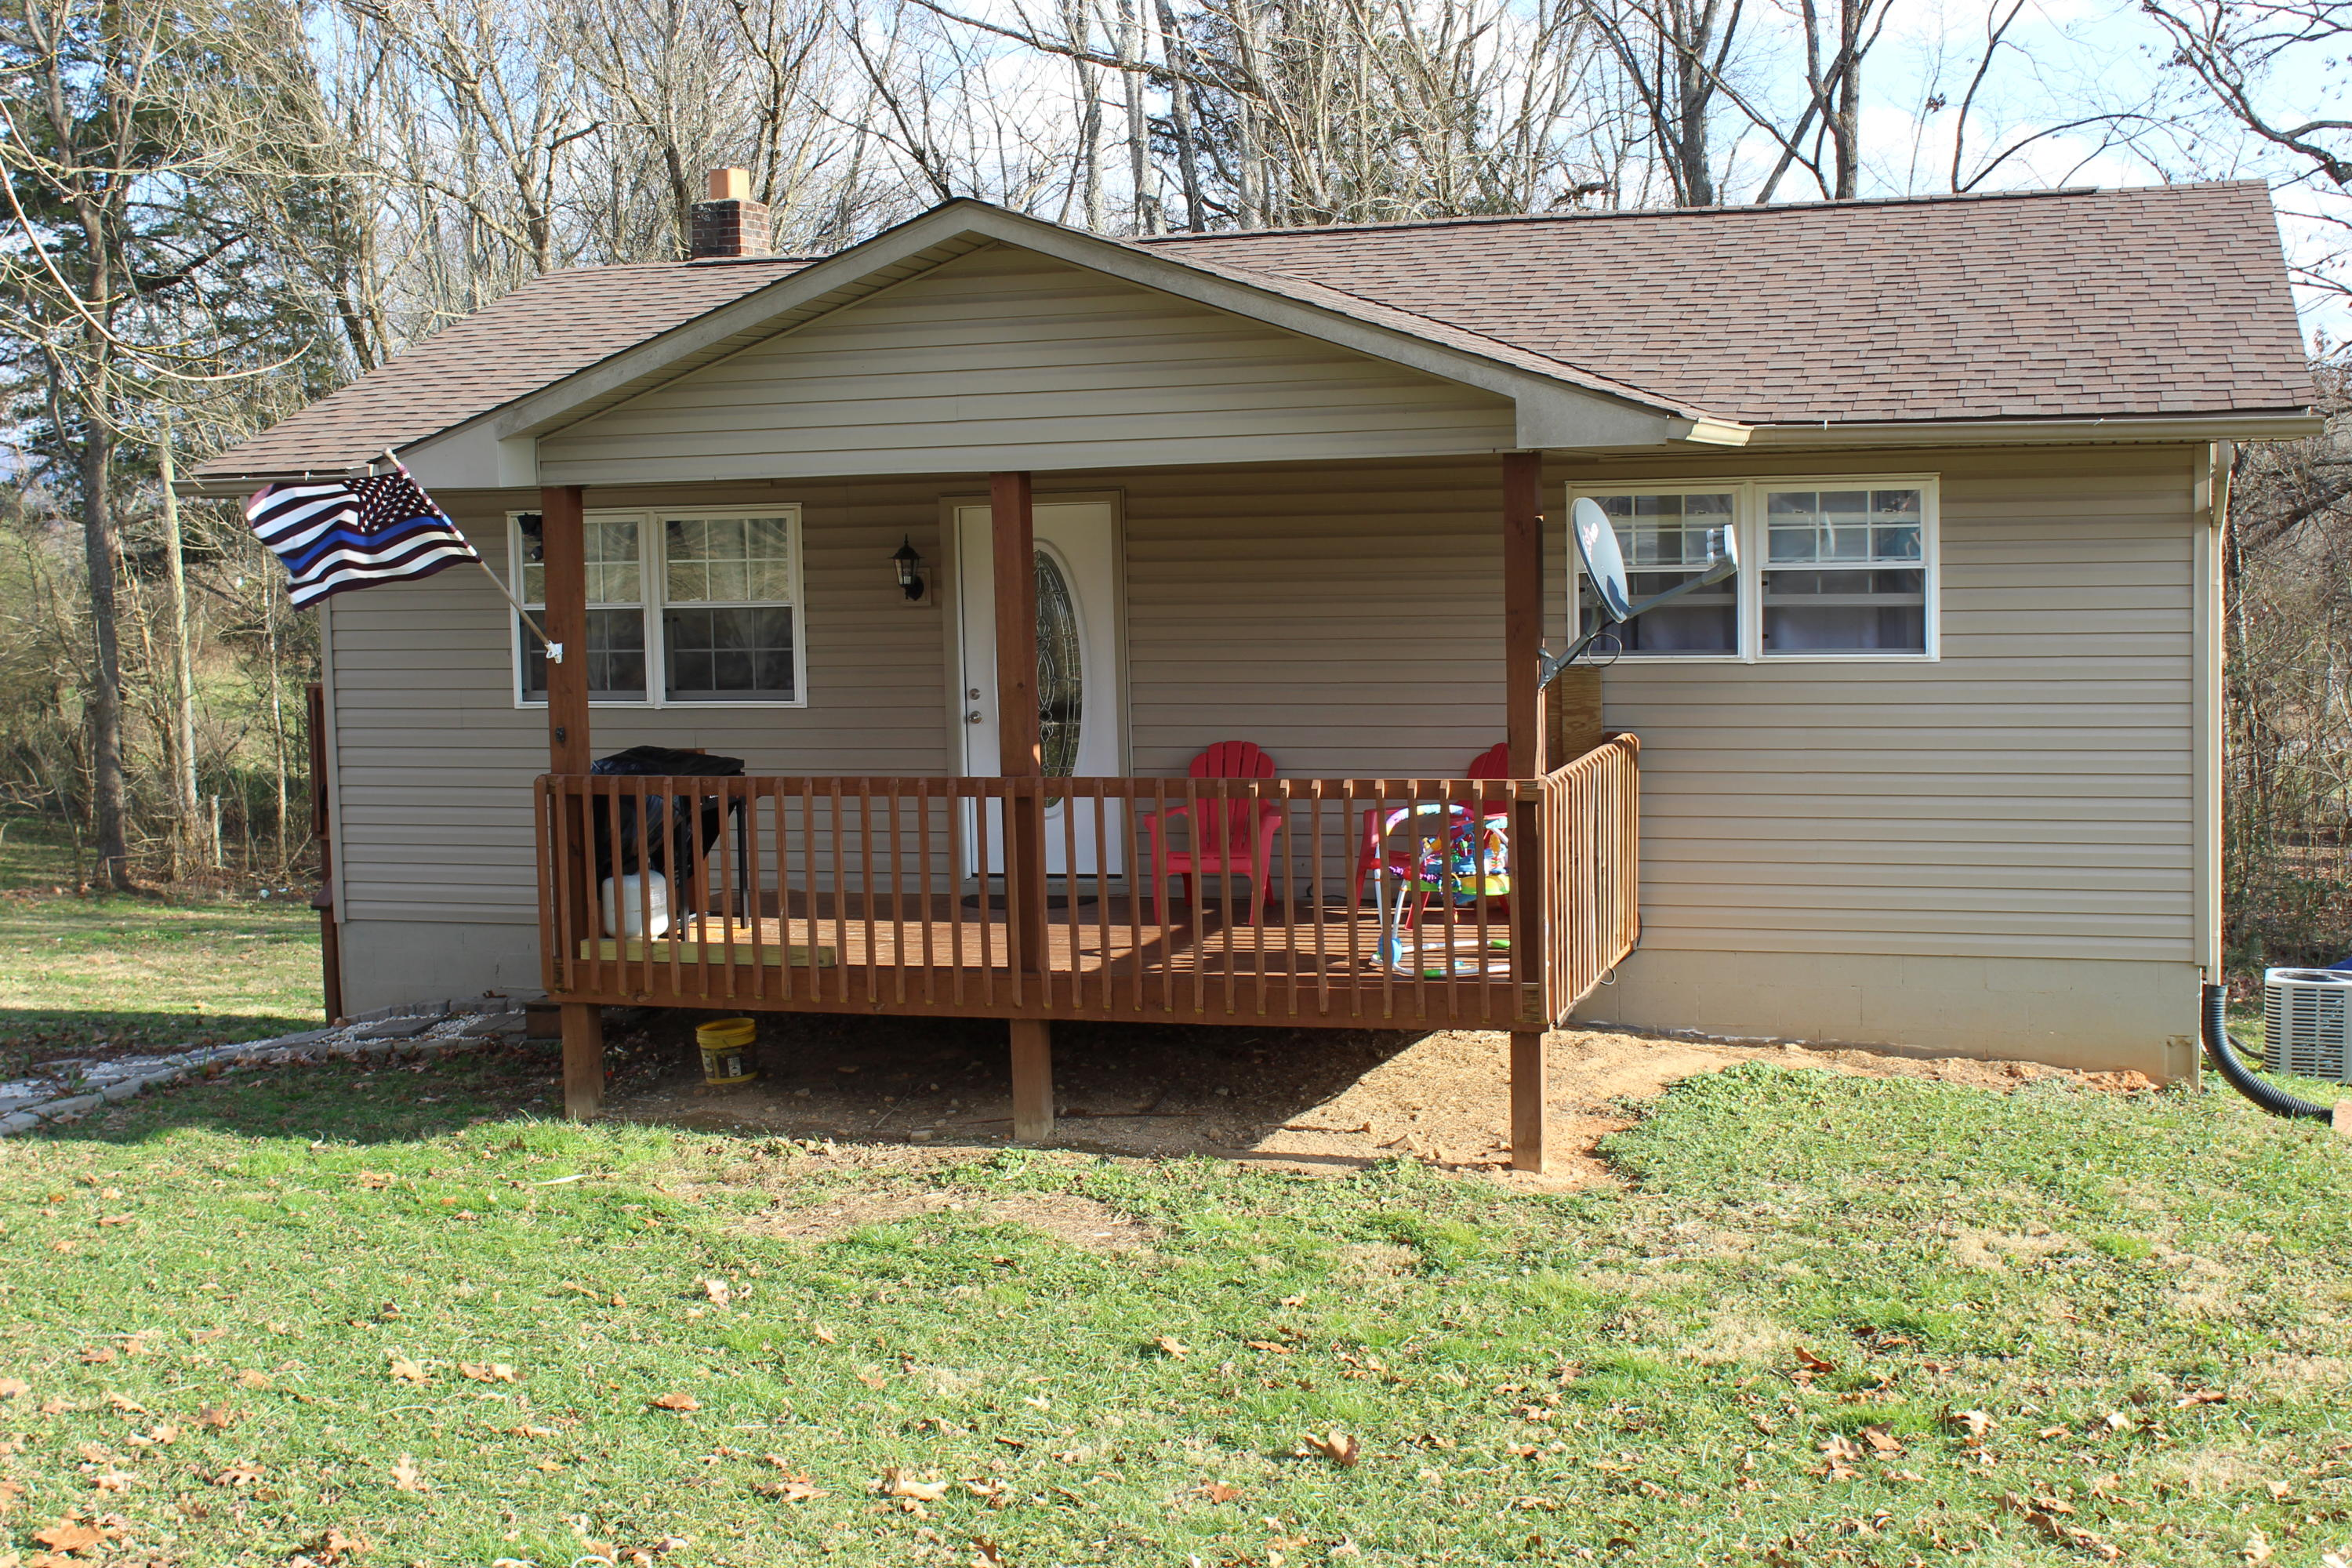 105 Walnut St, New Tazewell, Tennessee 37825, 3 Bedrooms Bedrooms, ,2 BathroomsBathrooms,Single Family,For Sale,Walnut,1090108